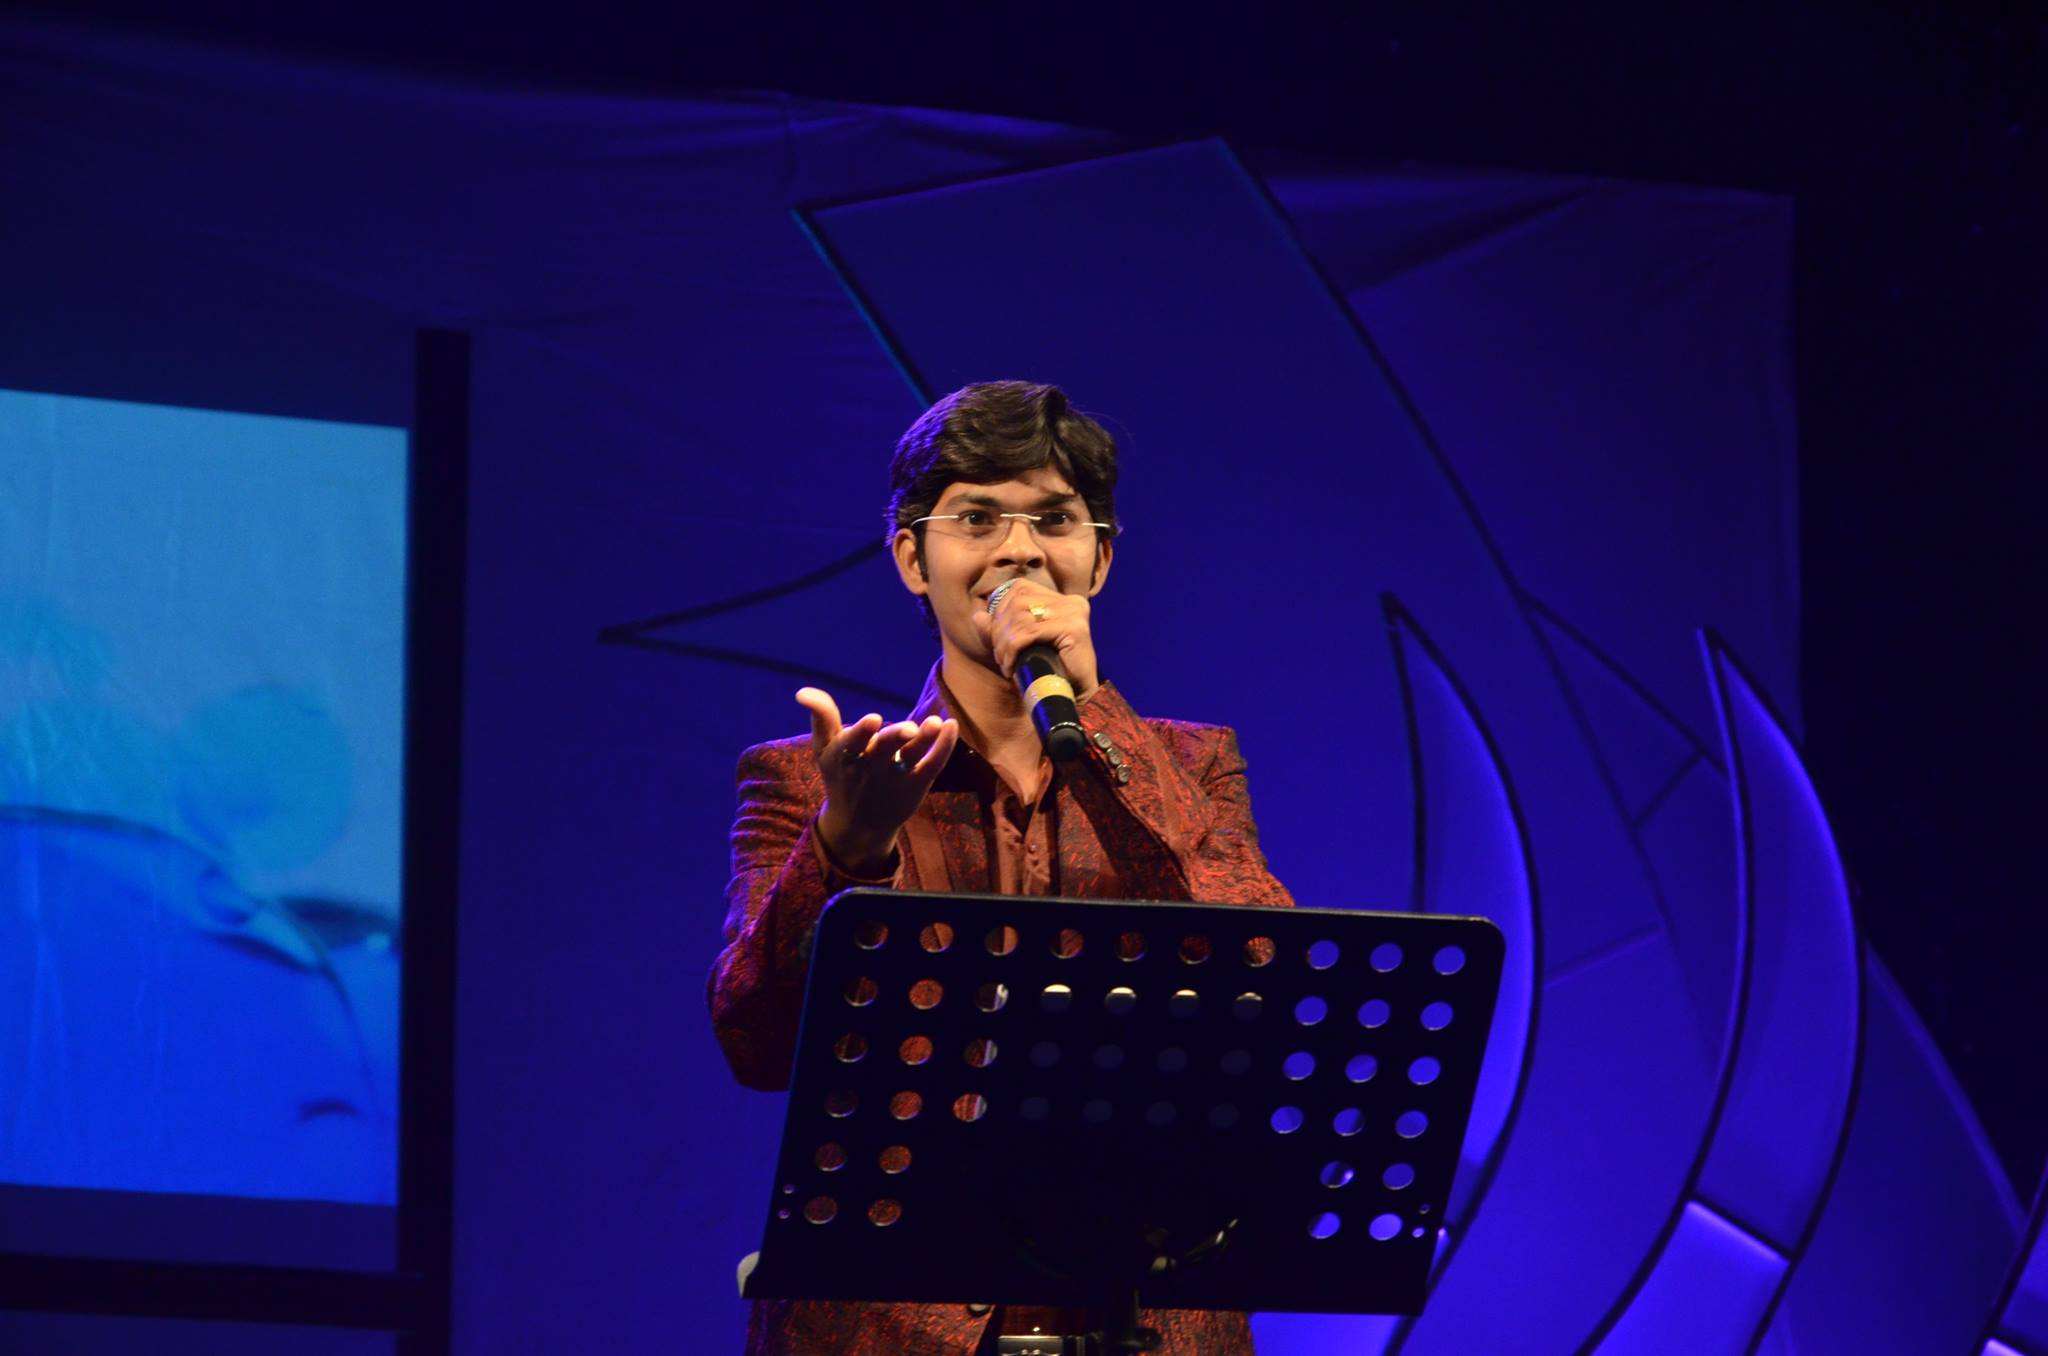 In an interview with Nation Next, Nagpur musician Niranjan Bobde speaks about his life as a performer, music scenario in the city and his future plans.